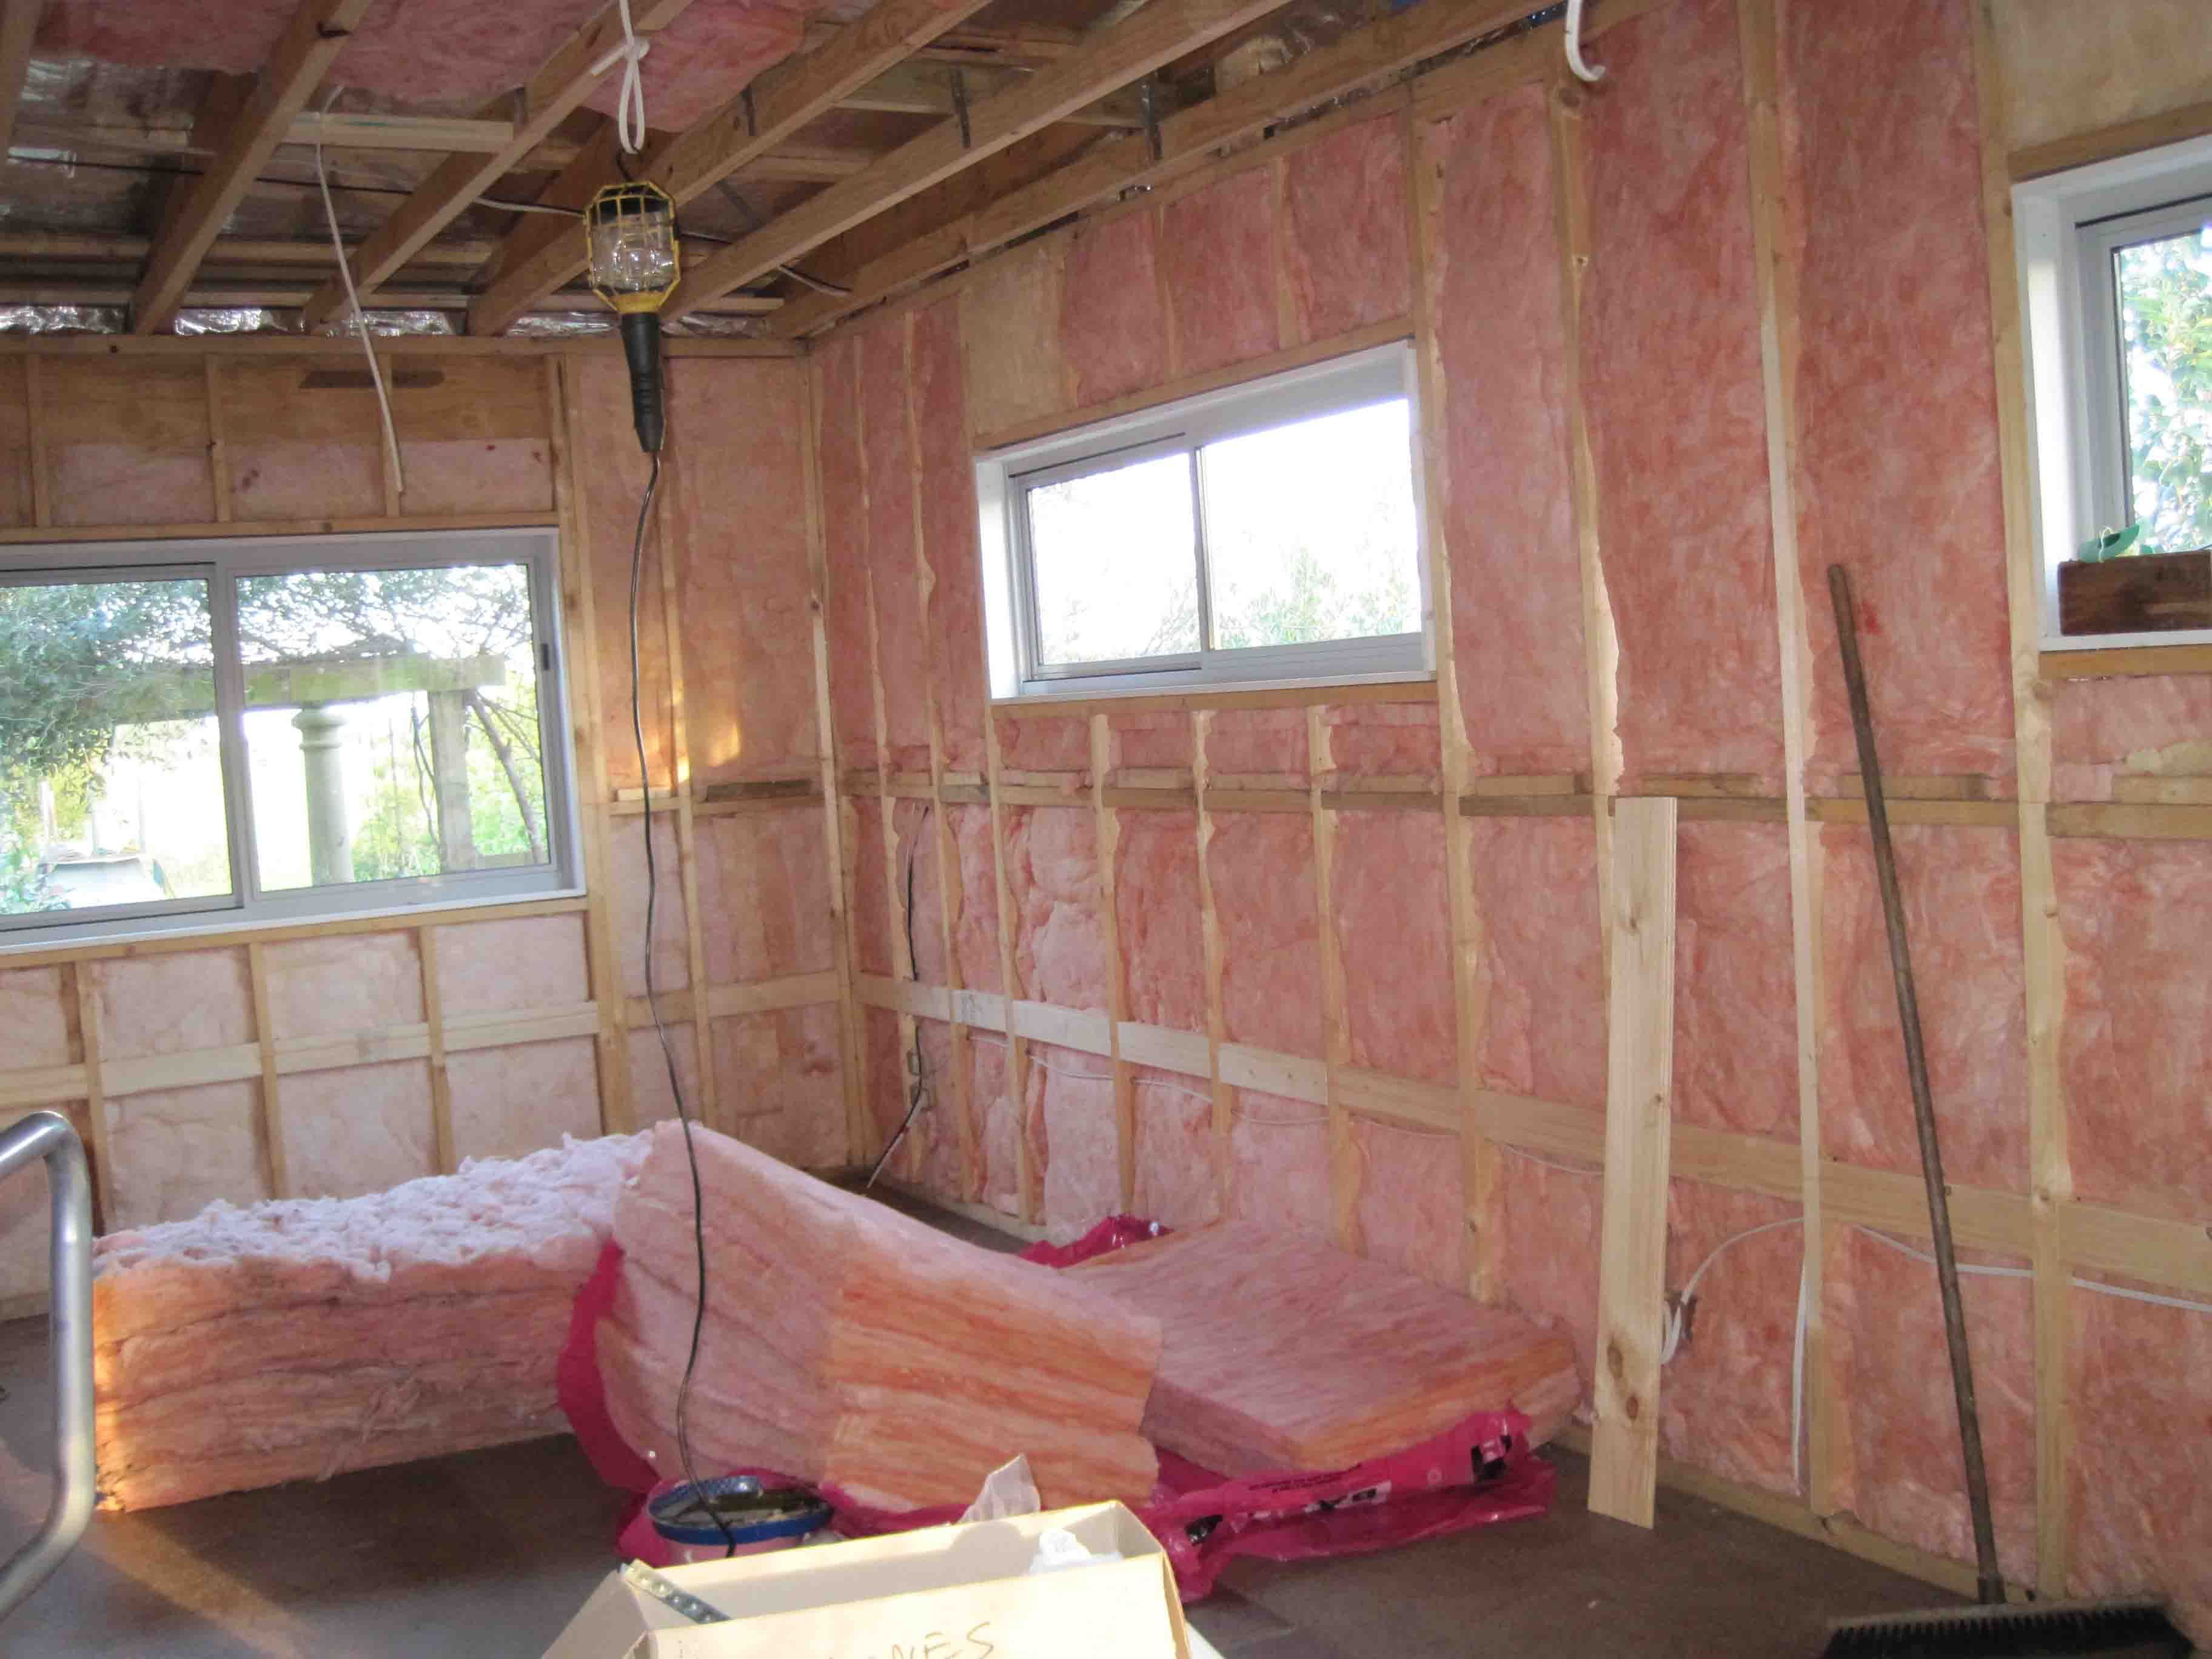 Powers Drywall Insulation Inc Offers Builders And Homeowners A Unique One Phone Call Does It All Approac Blown In Insulation Acoustical Ceiling Homeowner